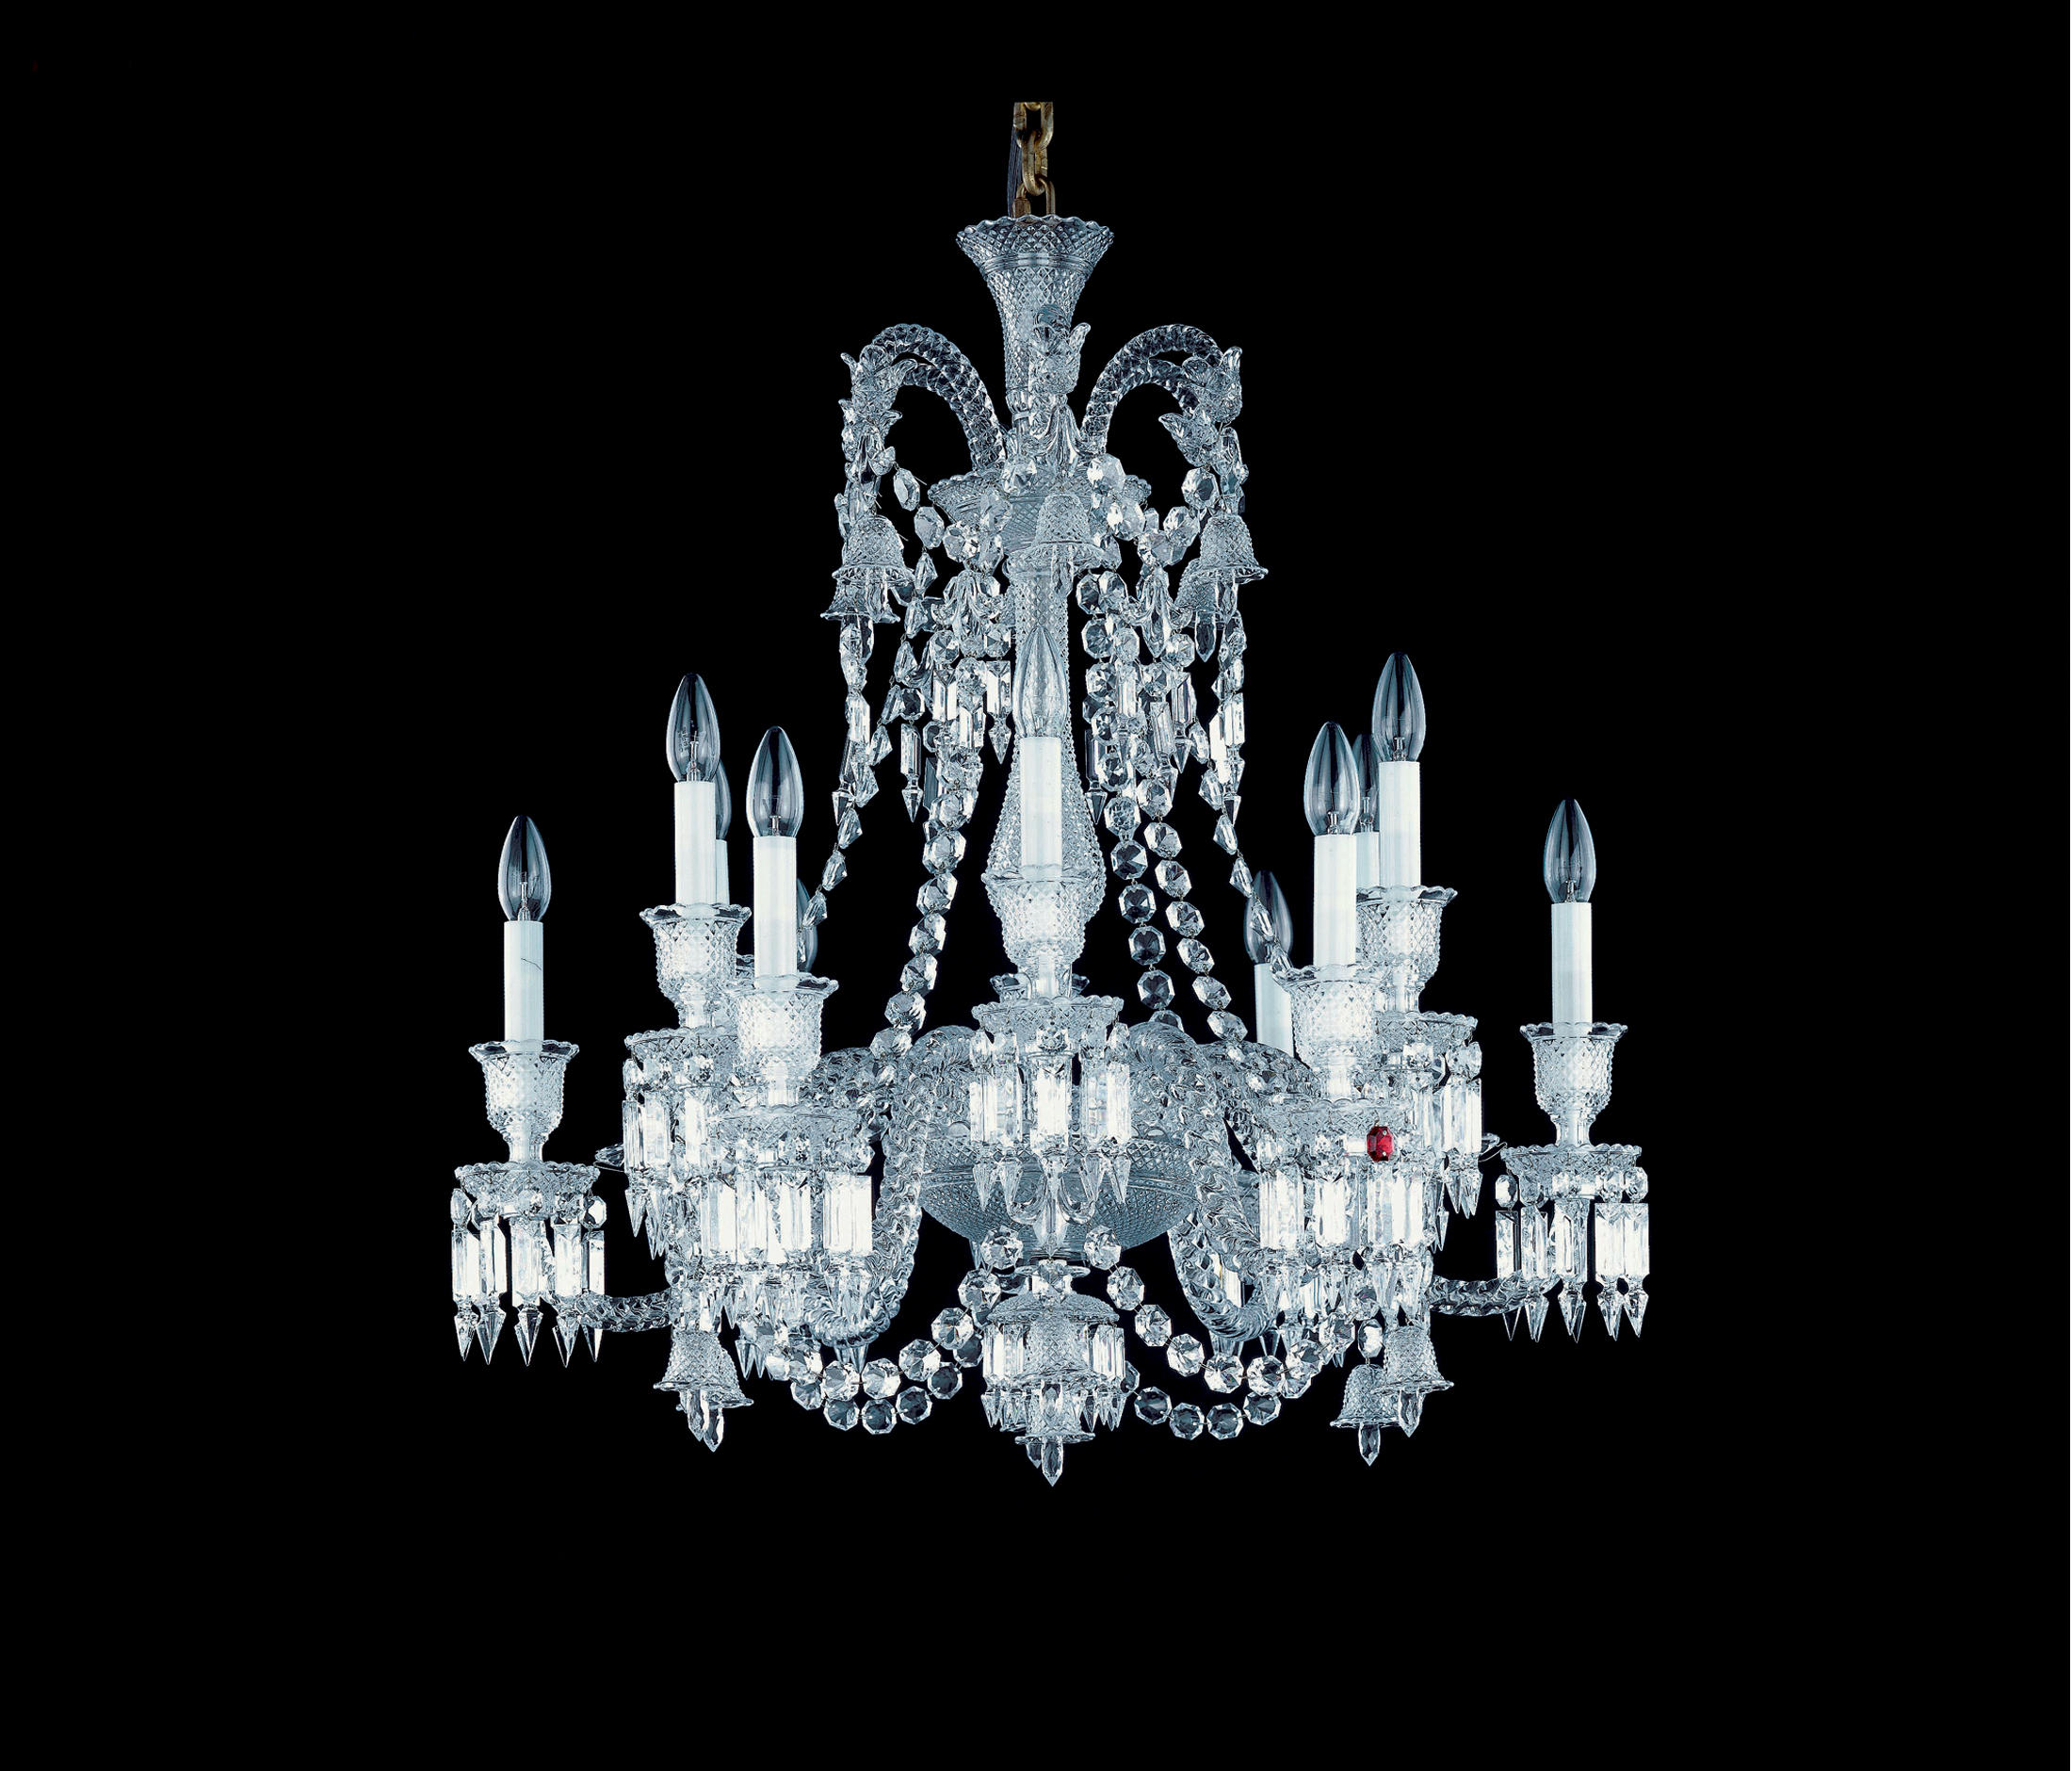 Zenith Ceiling Suspended Chandeliers From Baccarat